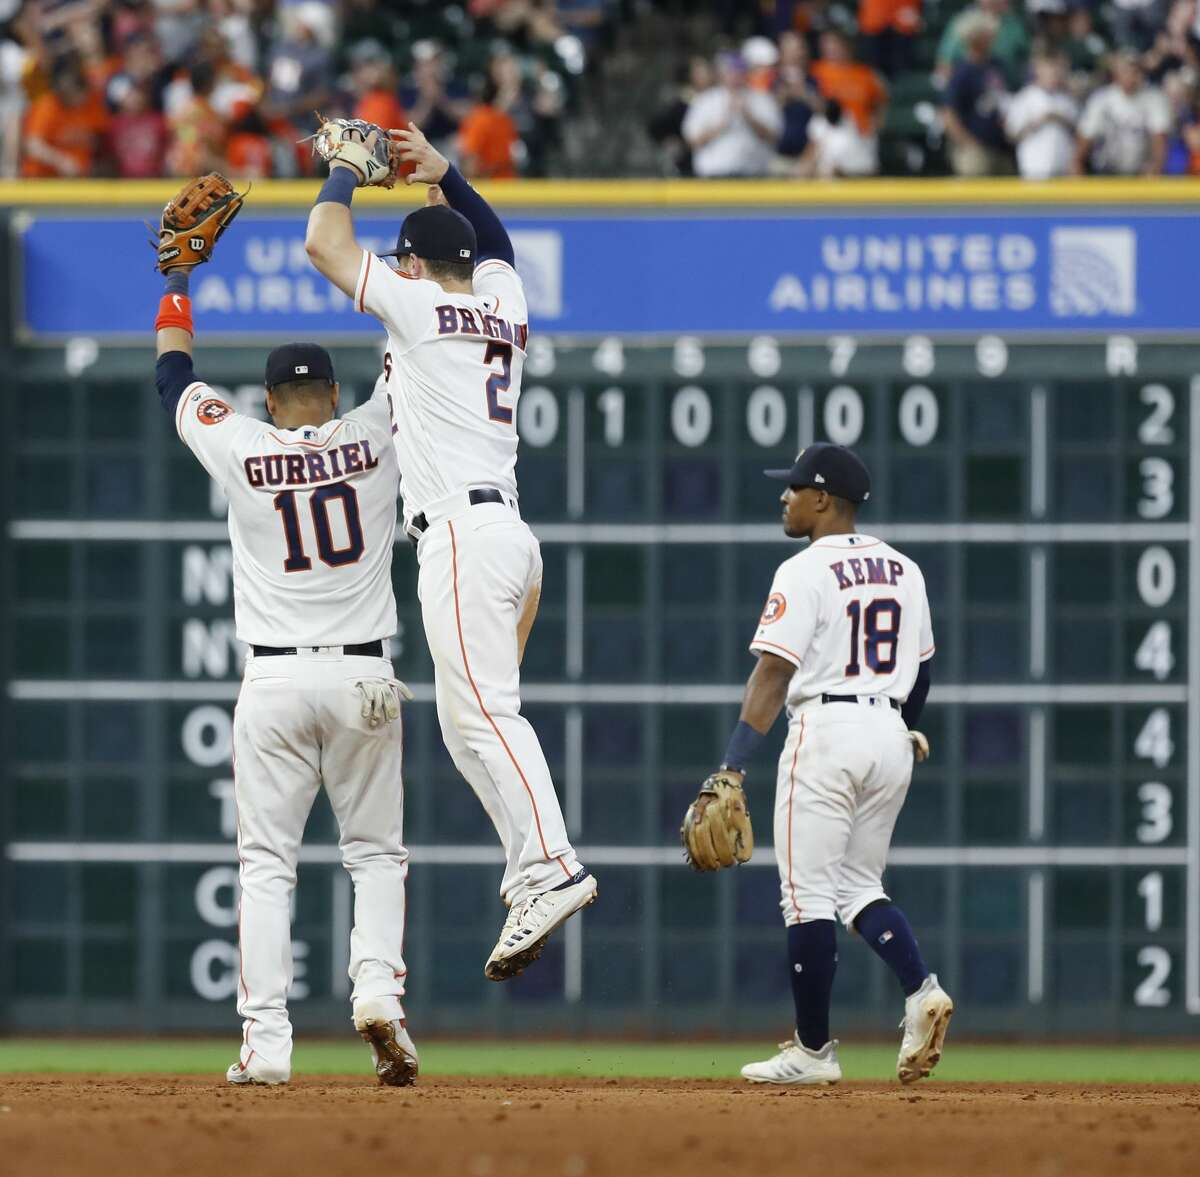 Houston Astros Alex Bregman (2) and Yuli Gurriel (10) celebrate the Astros 10-8 win over the Milwaukee Brewers during the ninth inning of an MLB baseball game at Minue Maid Park, Tuesday, June 11, 2019.